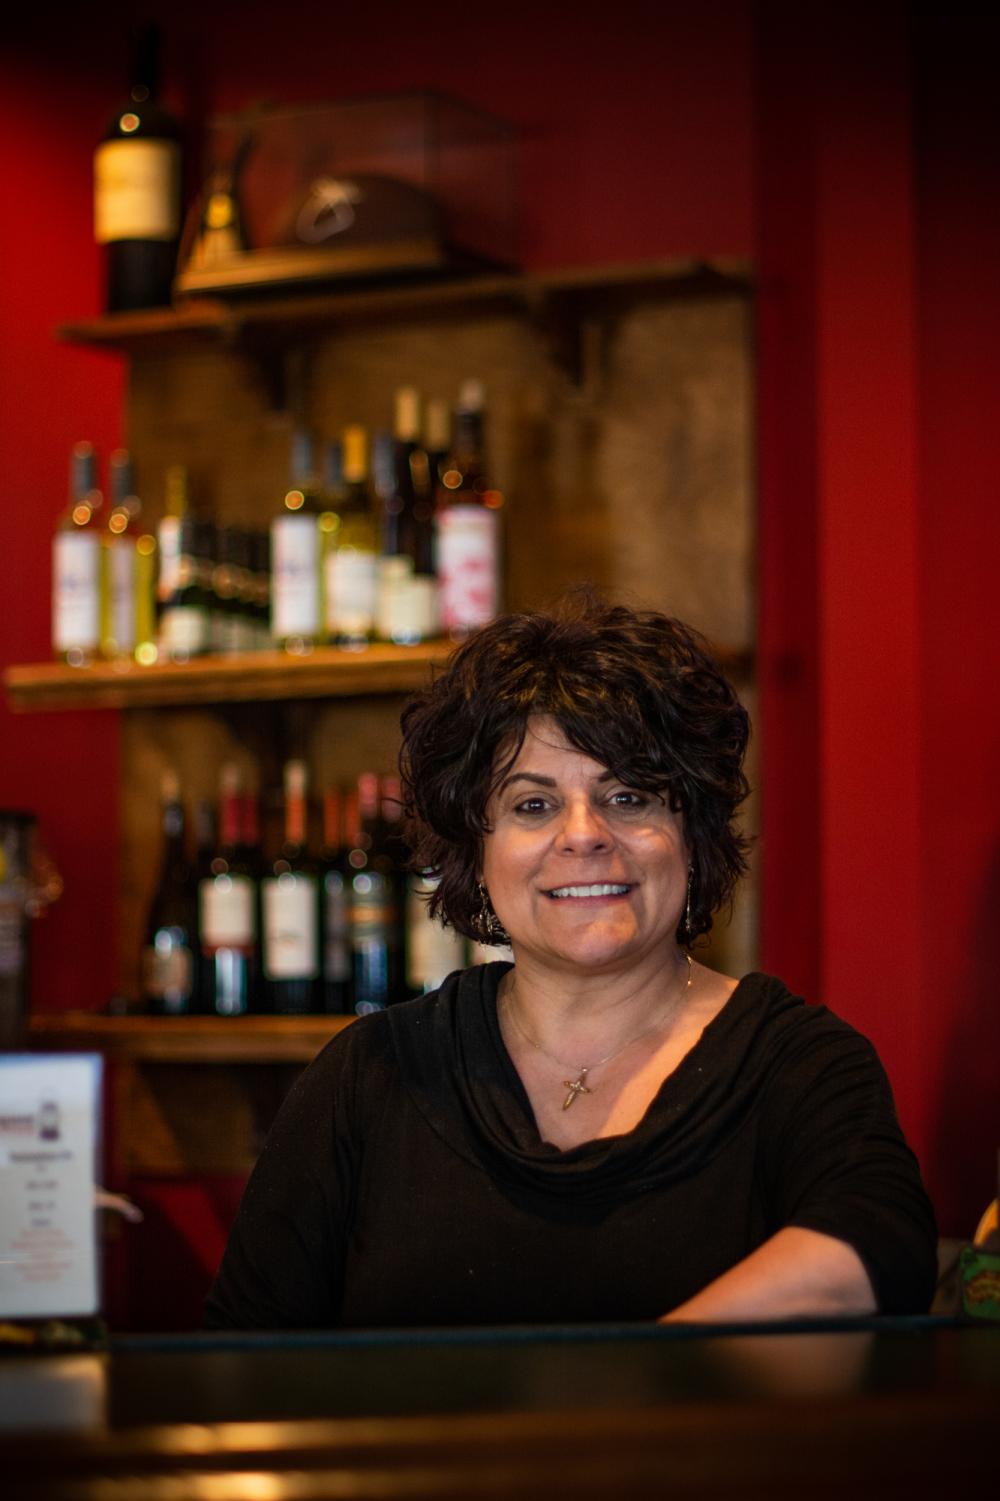 Allexia Brewer is the owner of Boone's newest Greek eatery The High Country Greek. Since its grand opening in early December, the response has been overwhelming, and Brewer is quite grateful. The High Country Greek is located on 507 Bamboo Road, inside of the Deer Valley Athletic Club.